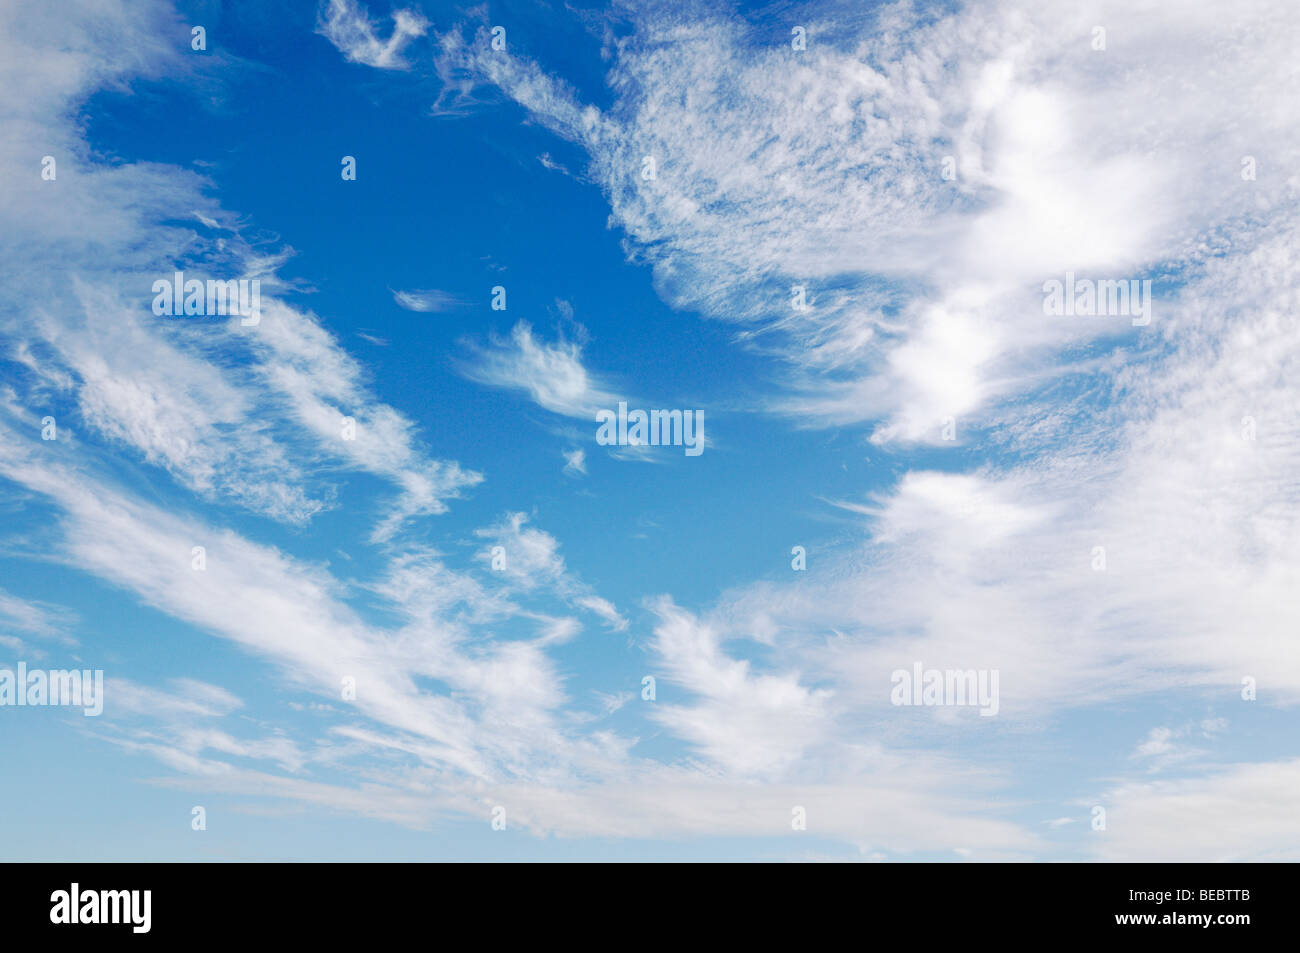 Cloud Filled Blue Sky - Stock Image